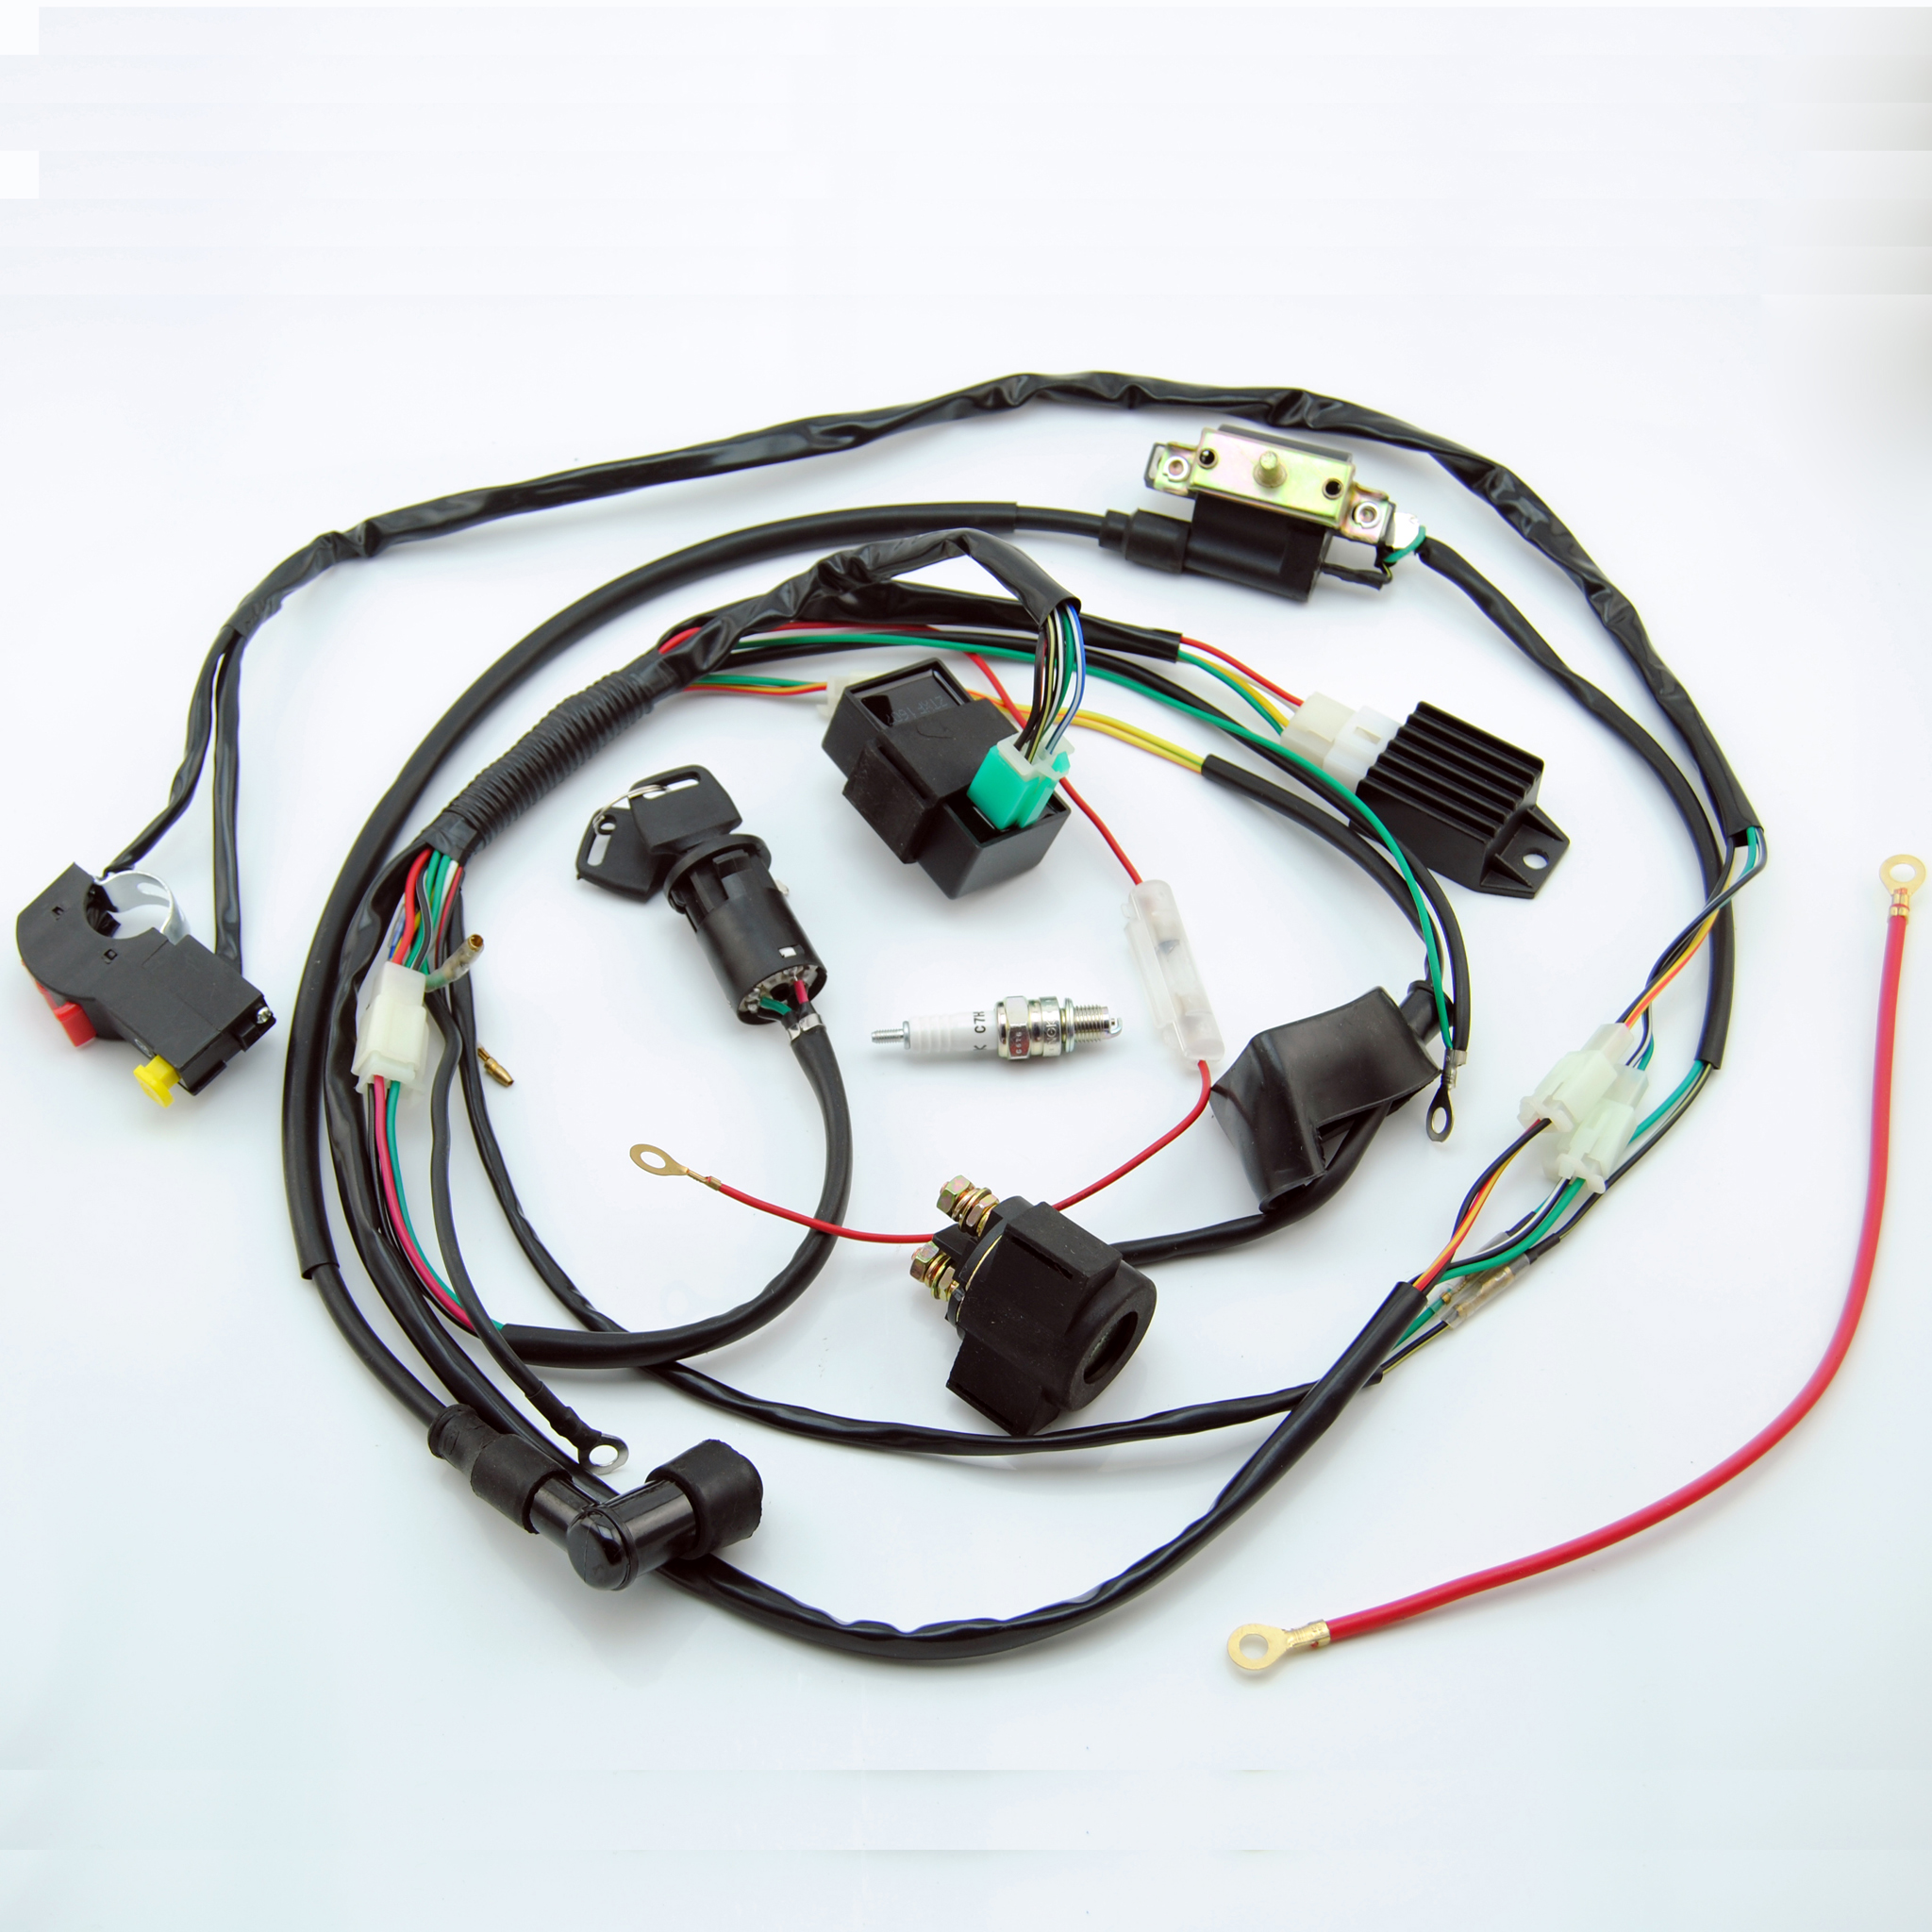 Awe Inspiring 7Mgte Engine Wiring Harness For Sale Mk3 Supra Engine Harness Wiring 101 Capemaxxcnl